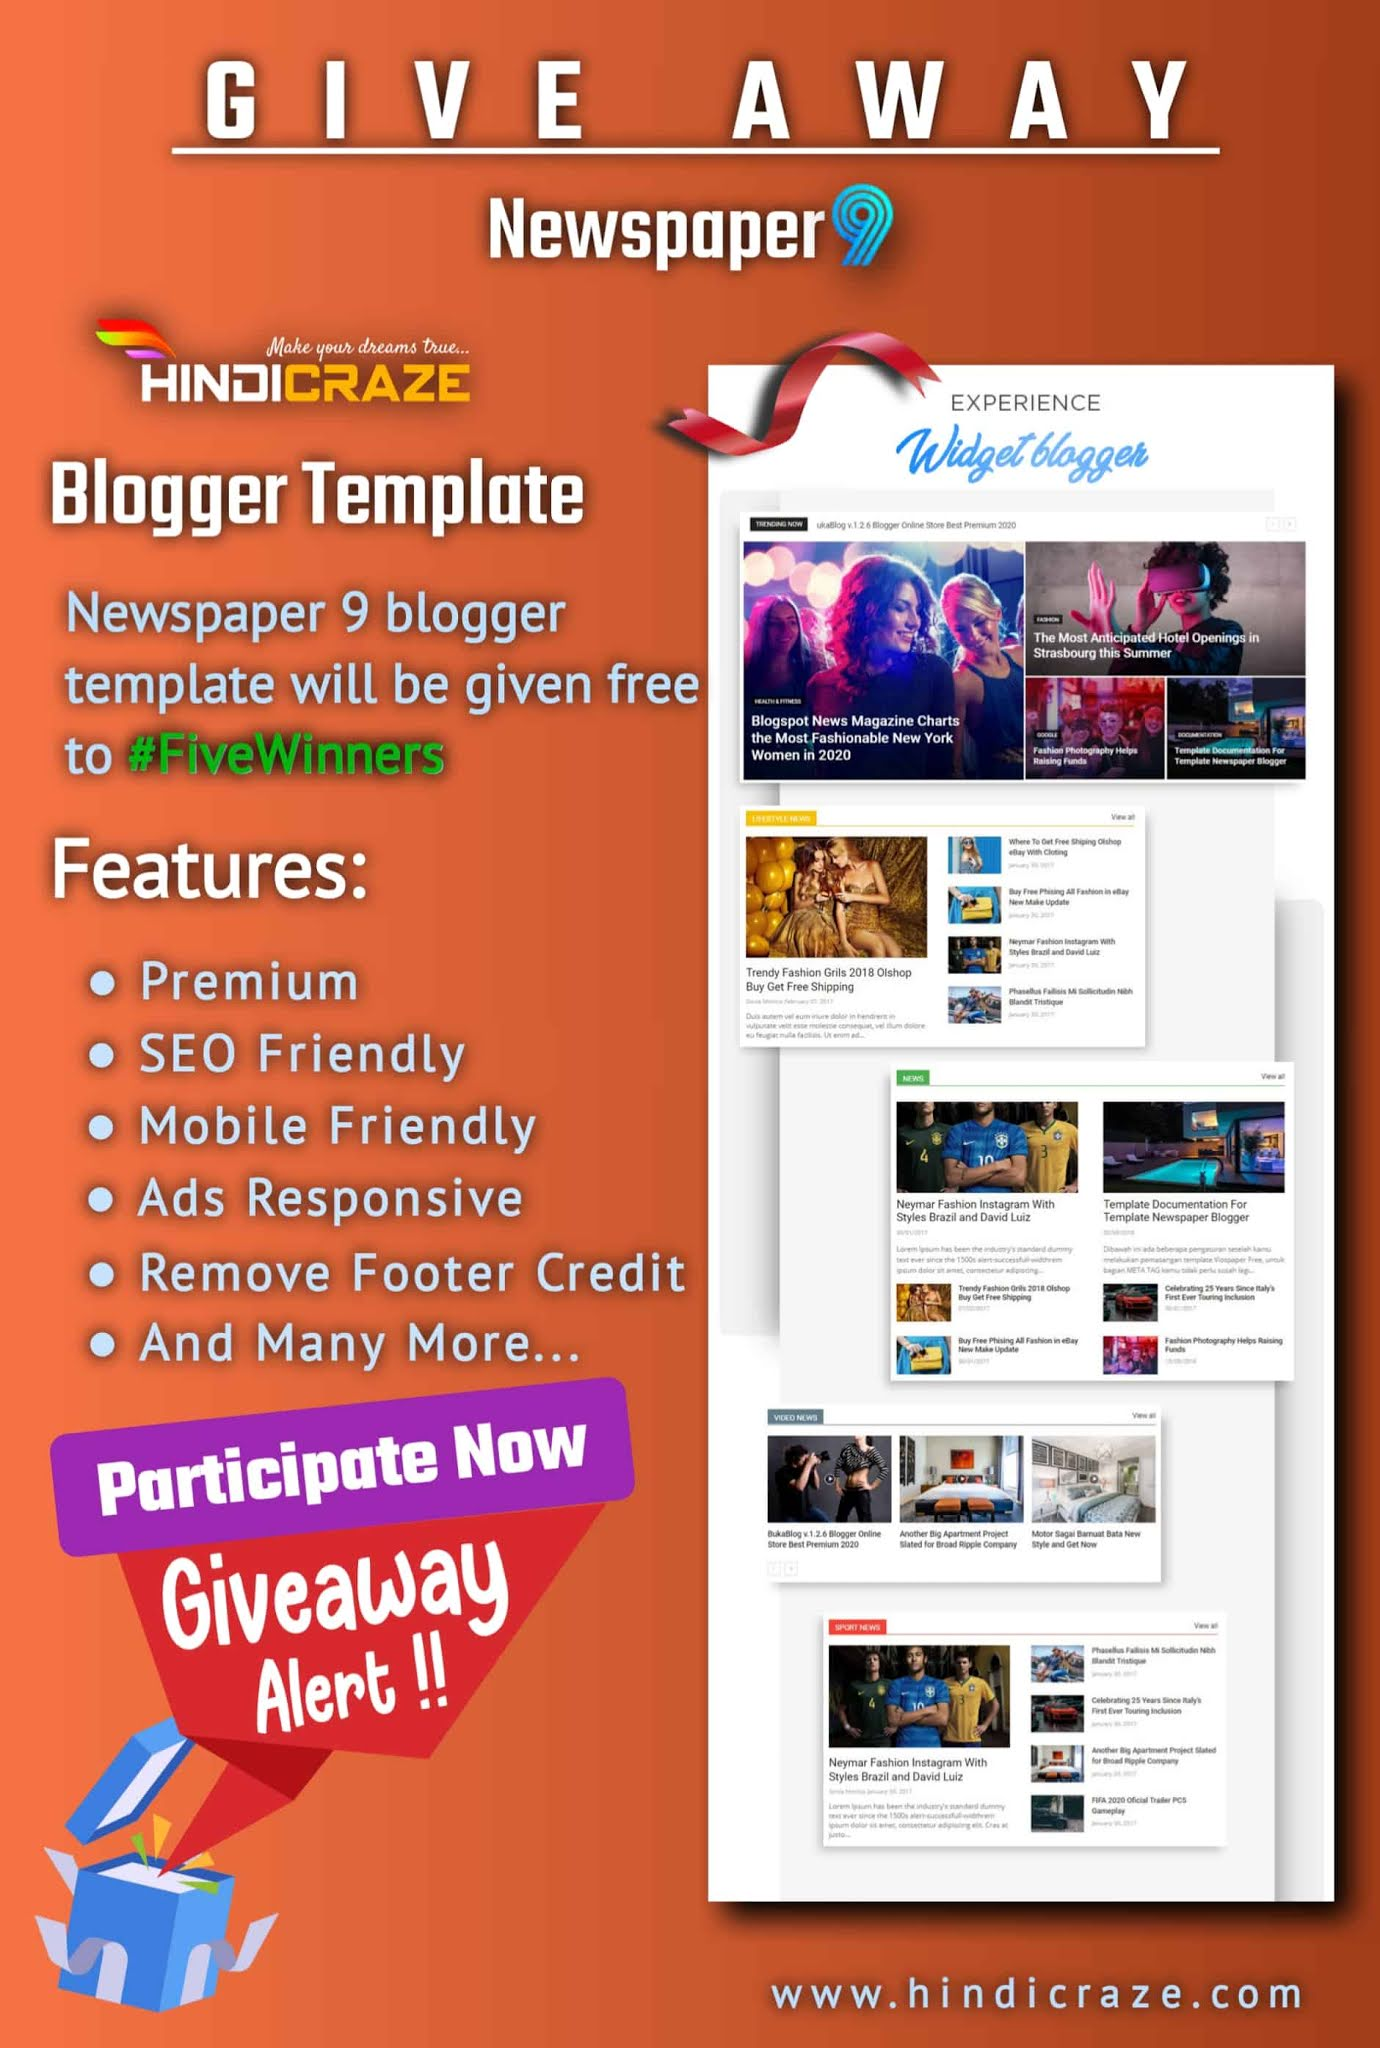 Newspaper 9 blogger template giveaway